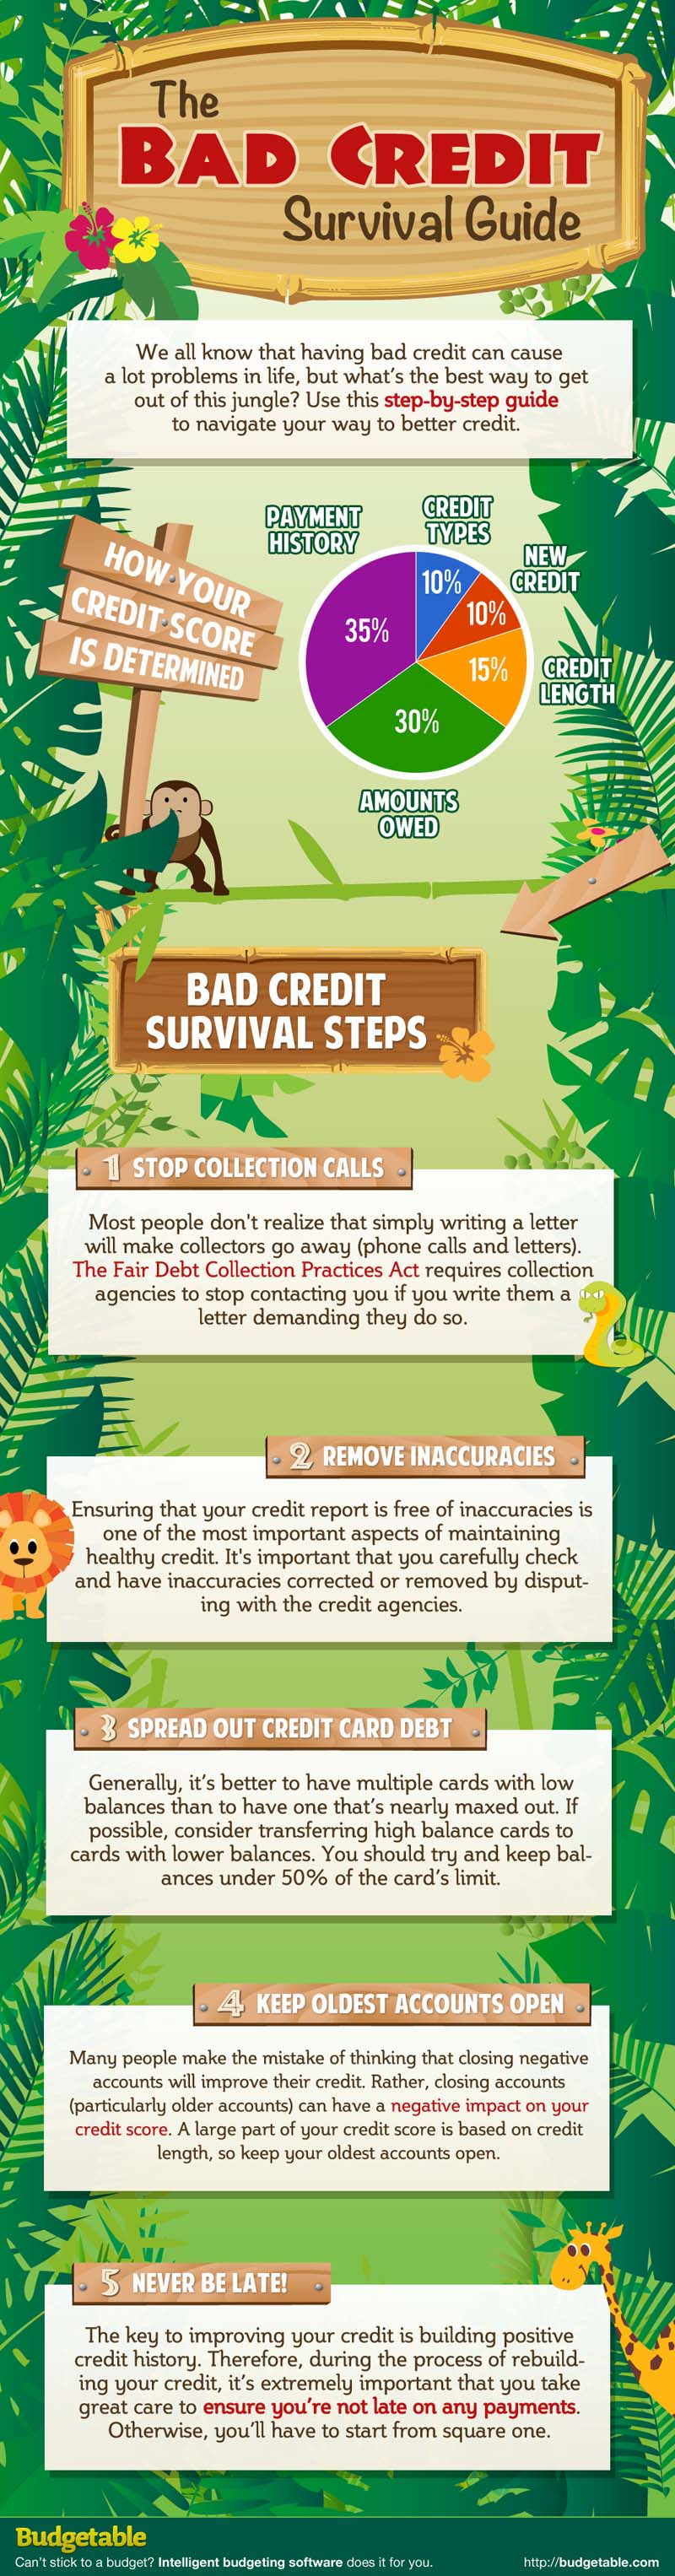 How to survive from bad credit